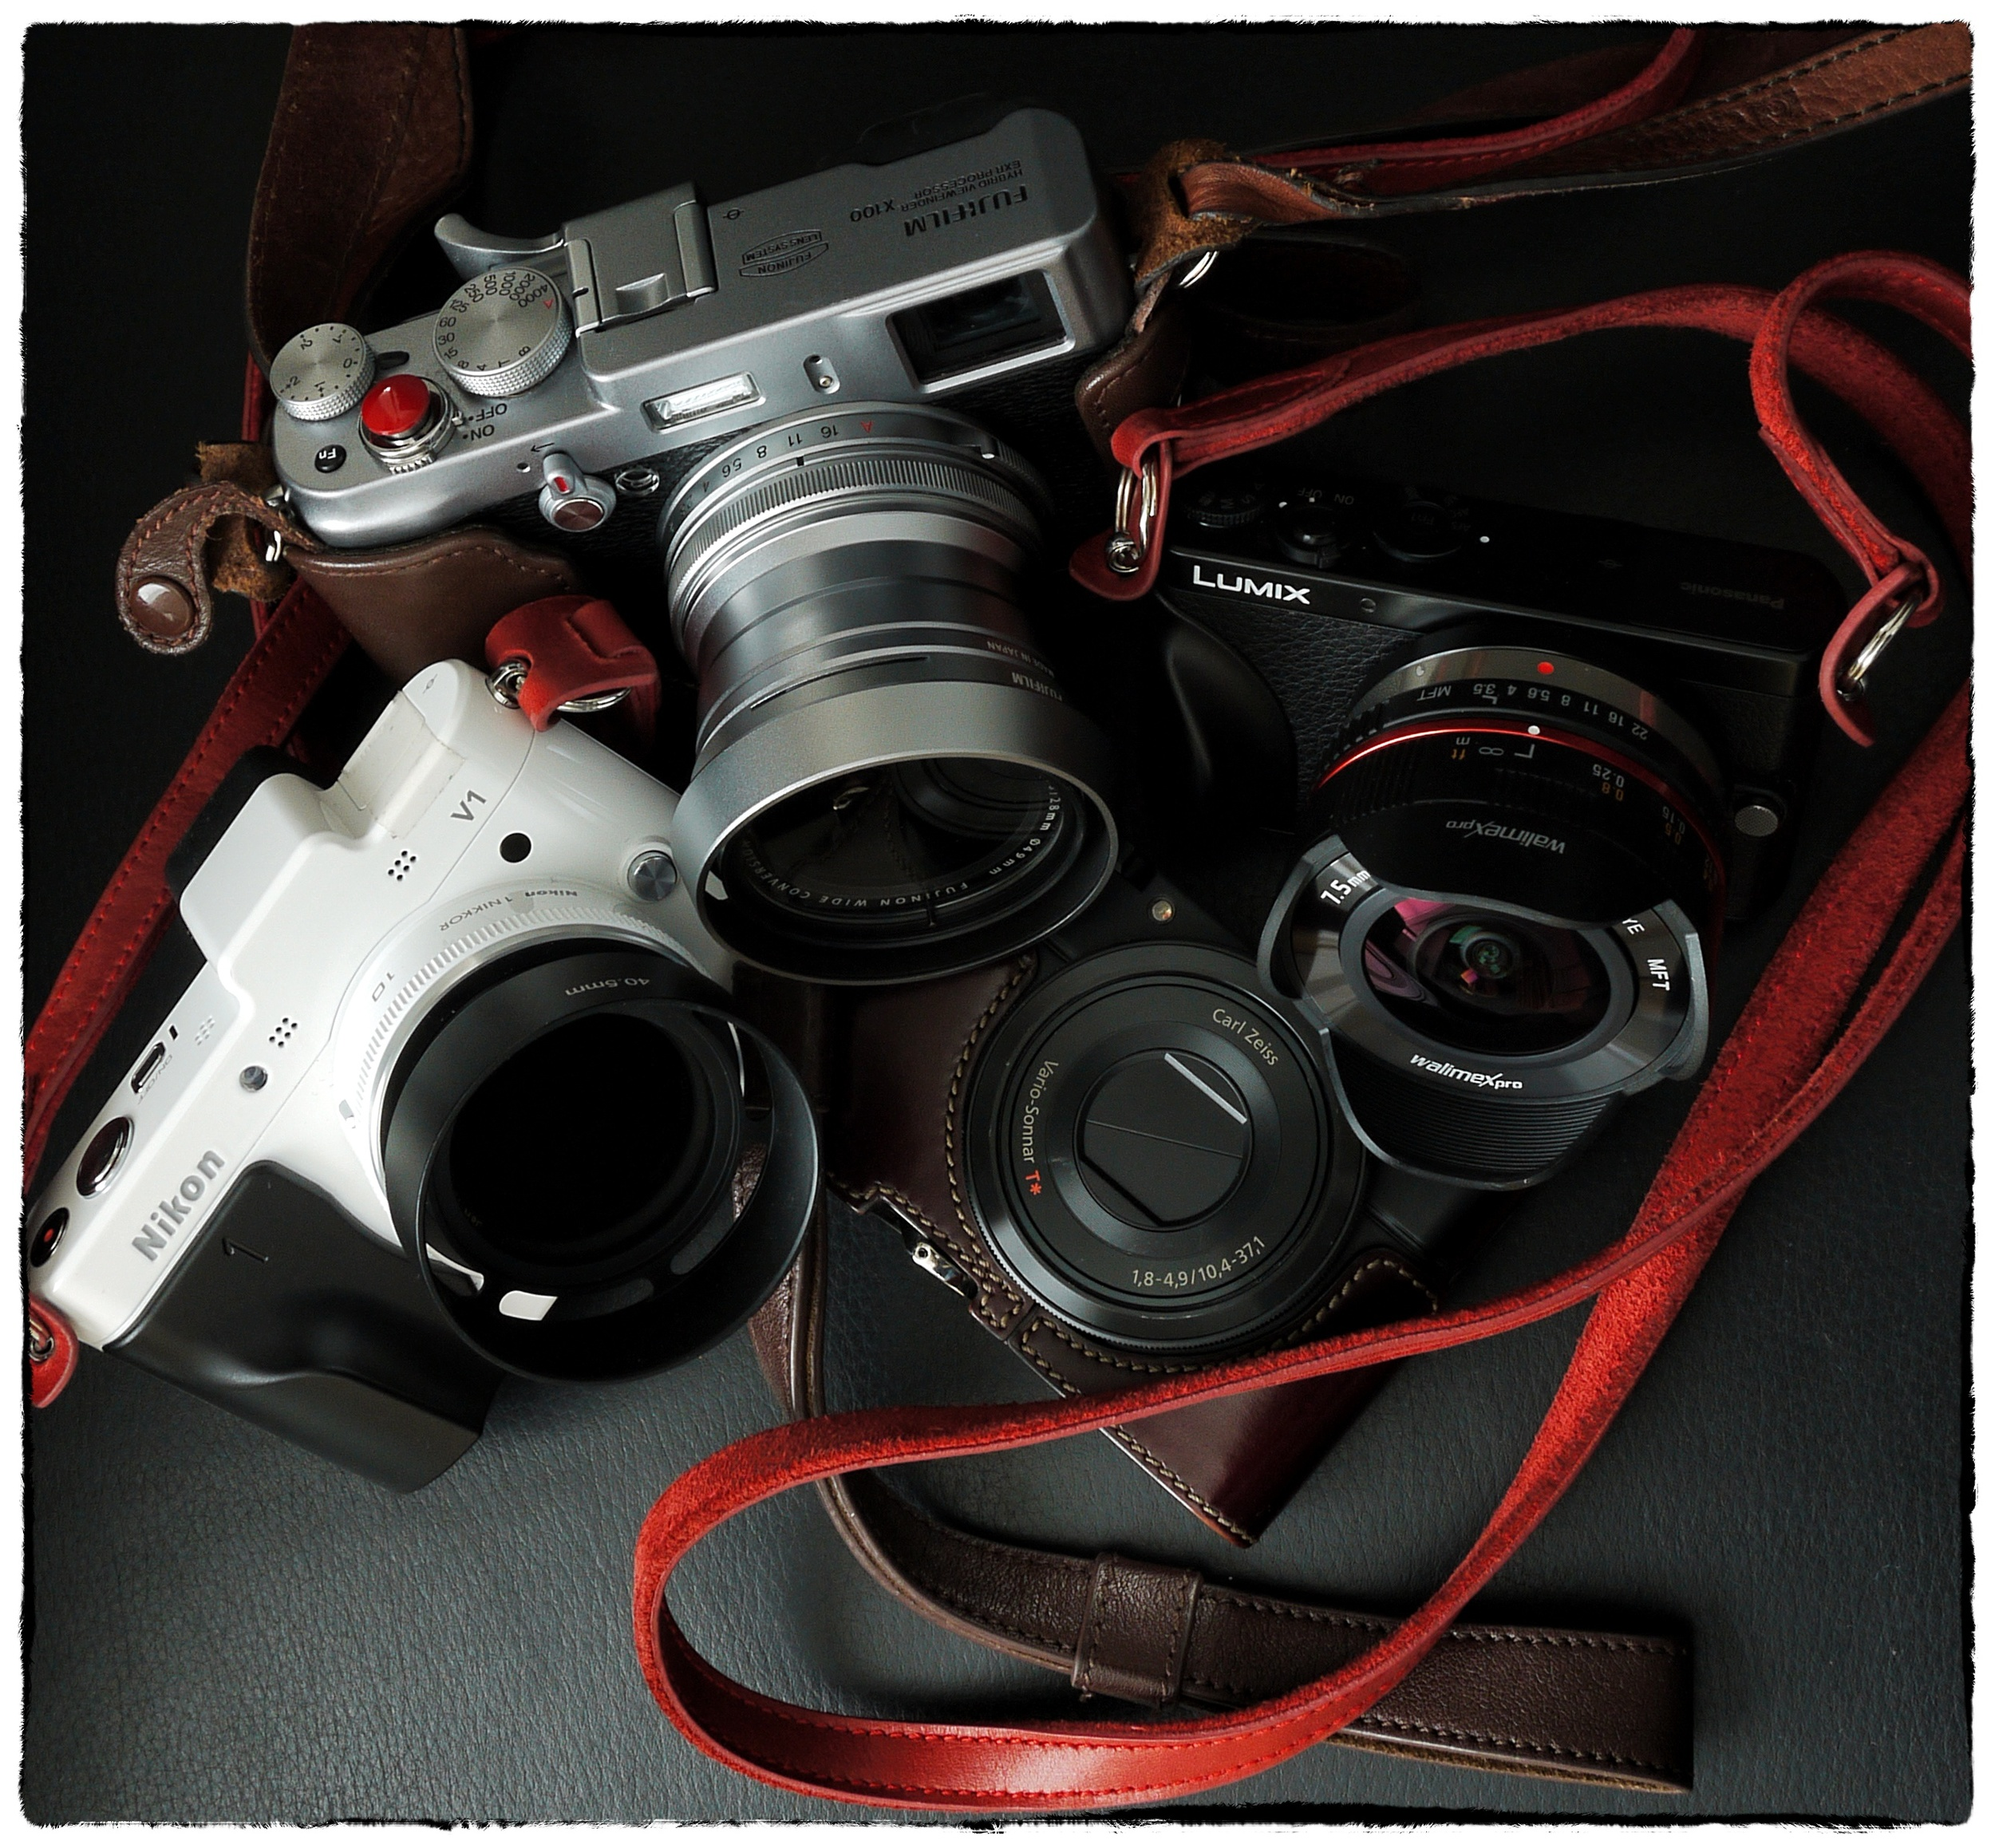 Trusty and comparatively weightless cameras, the Fuji X100 seen here with 28mm equiv. wide angle supplementary lens